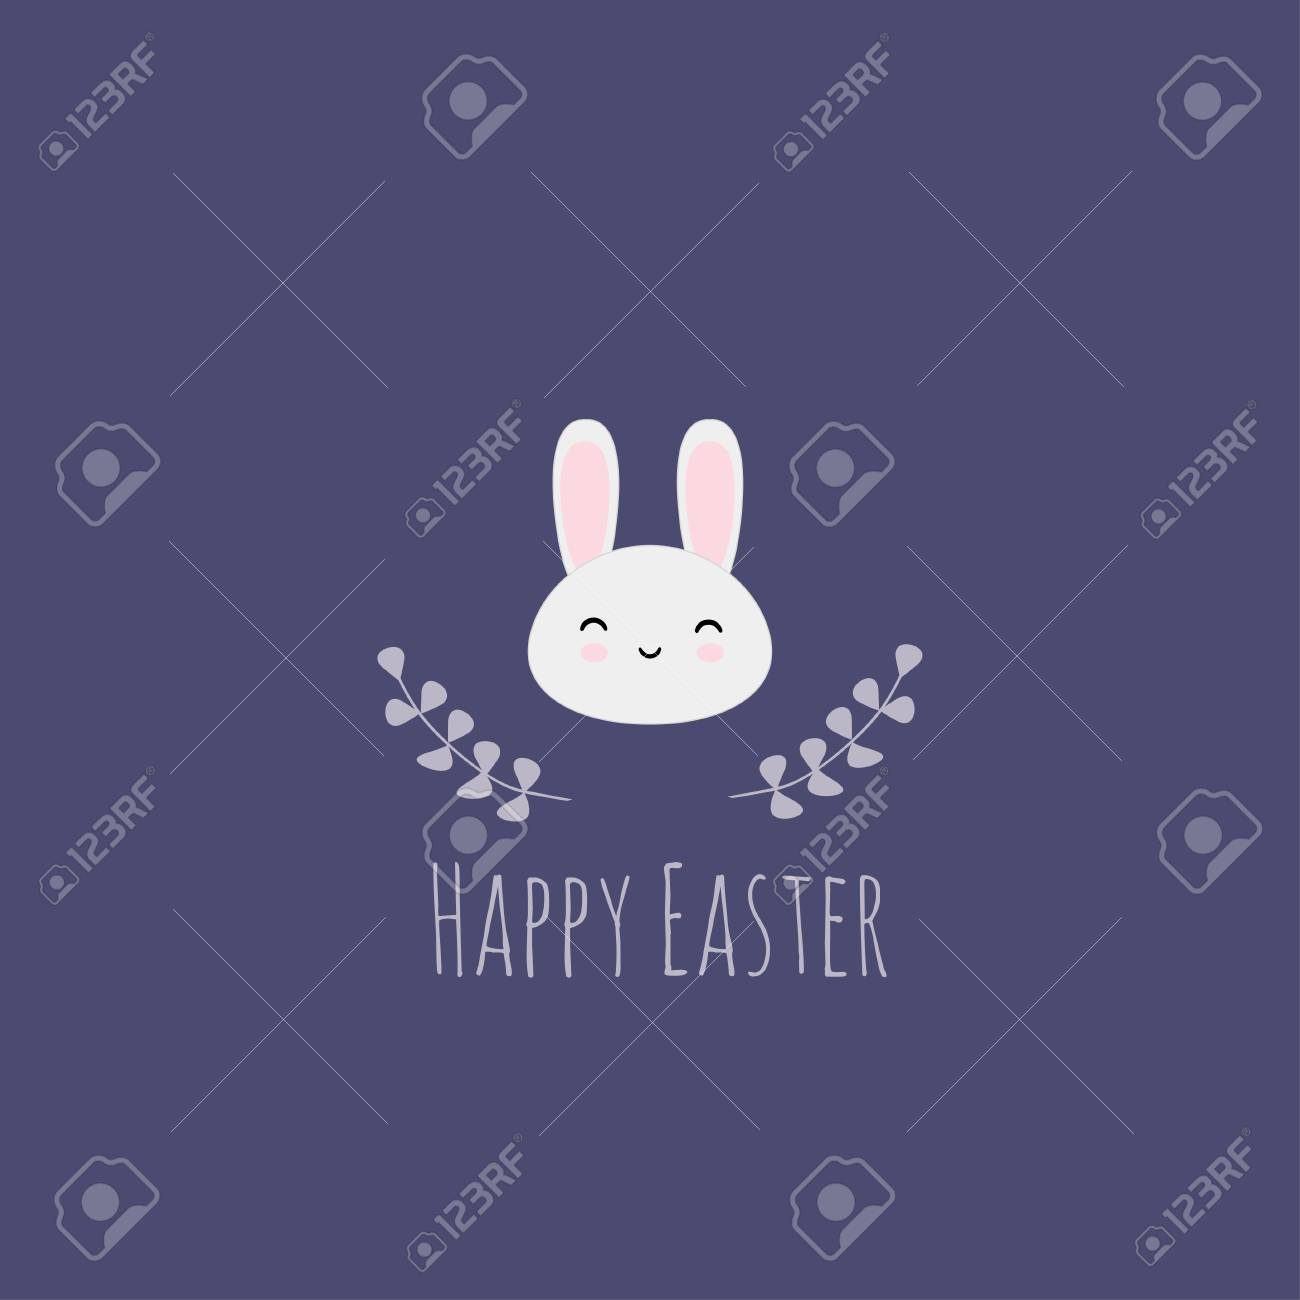 Vector Illustration With Easter Rabbit On Navy Blue Background